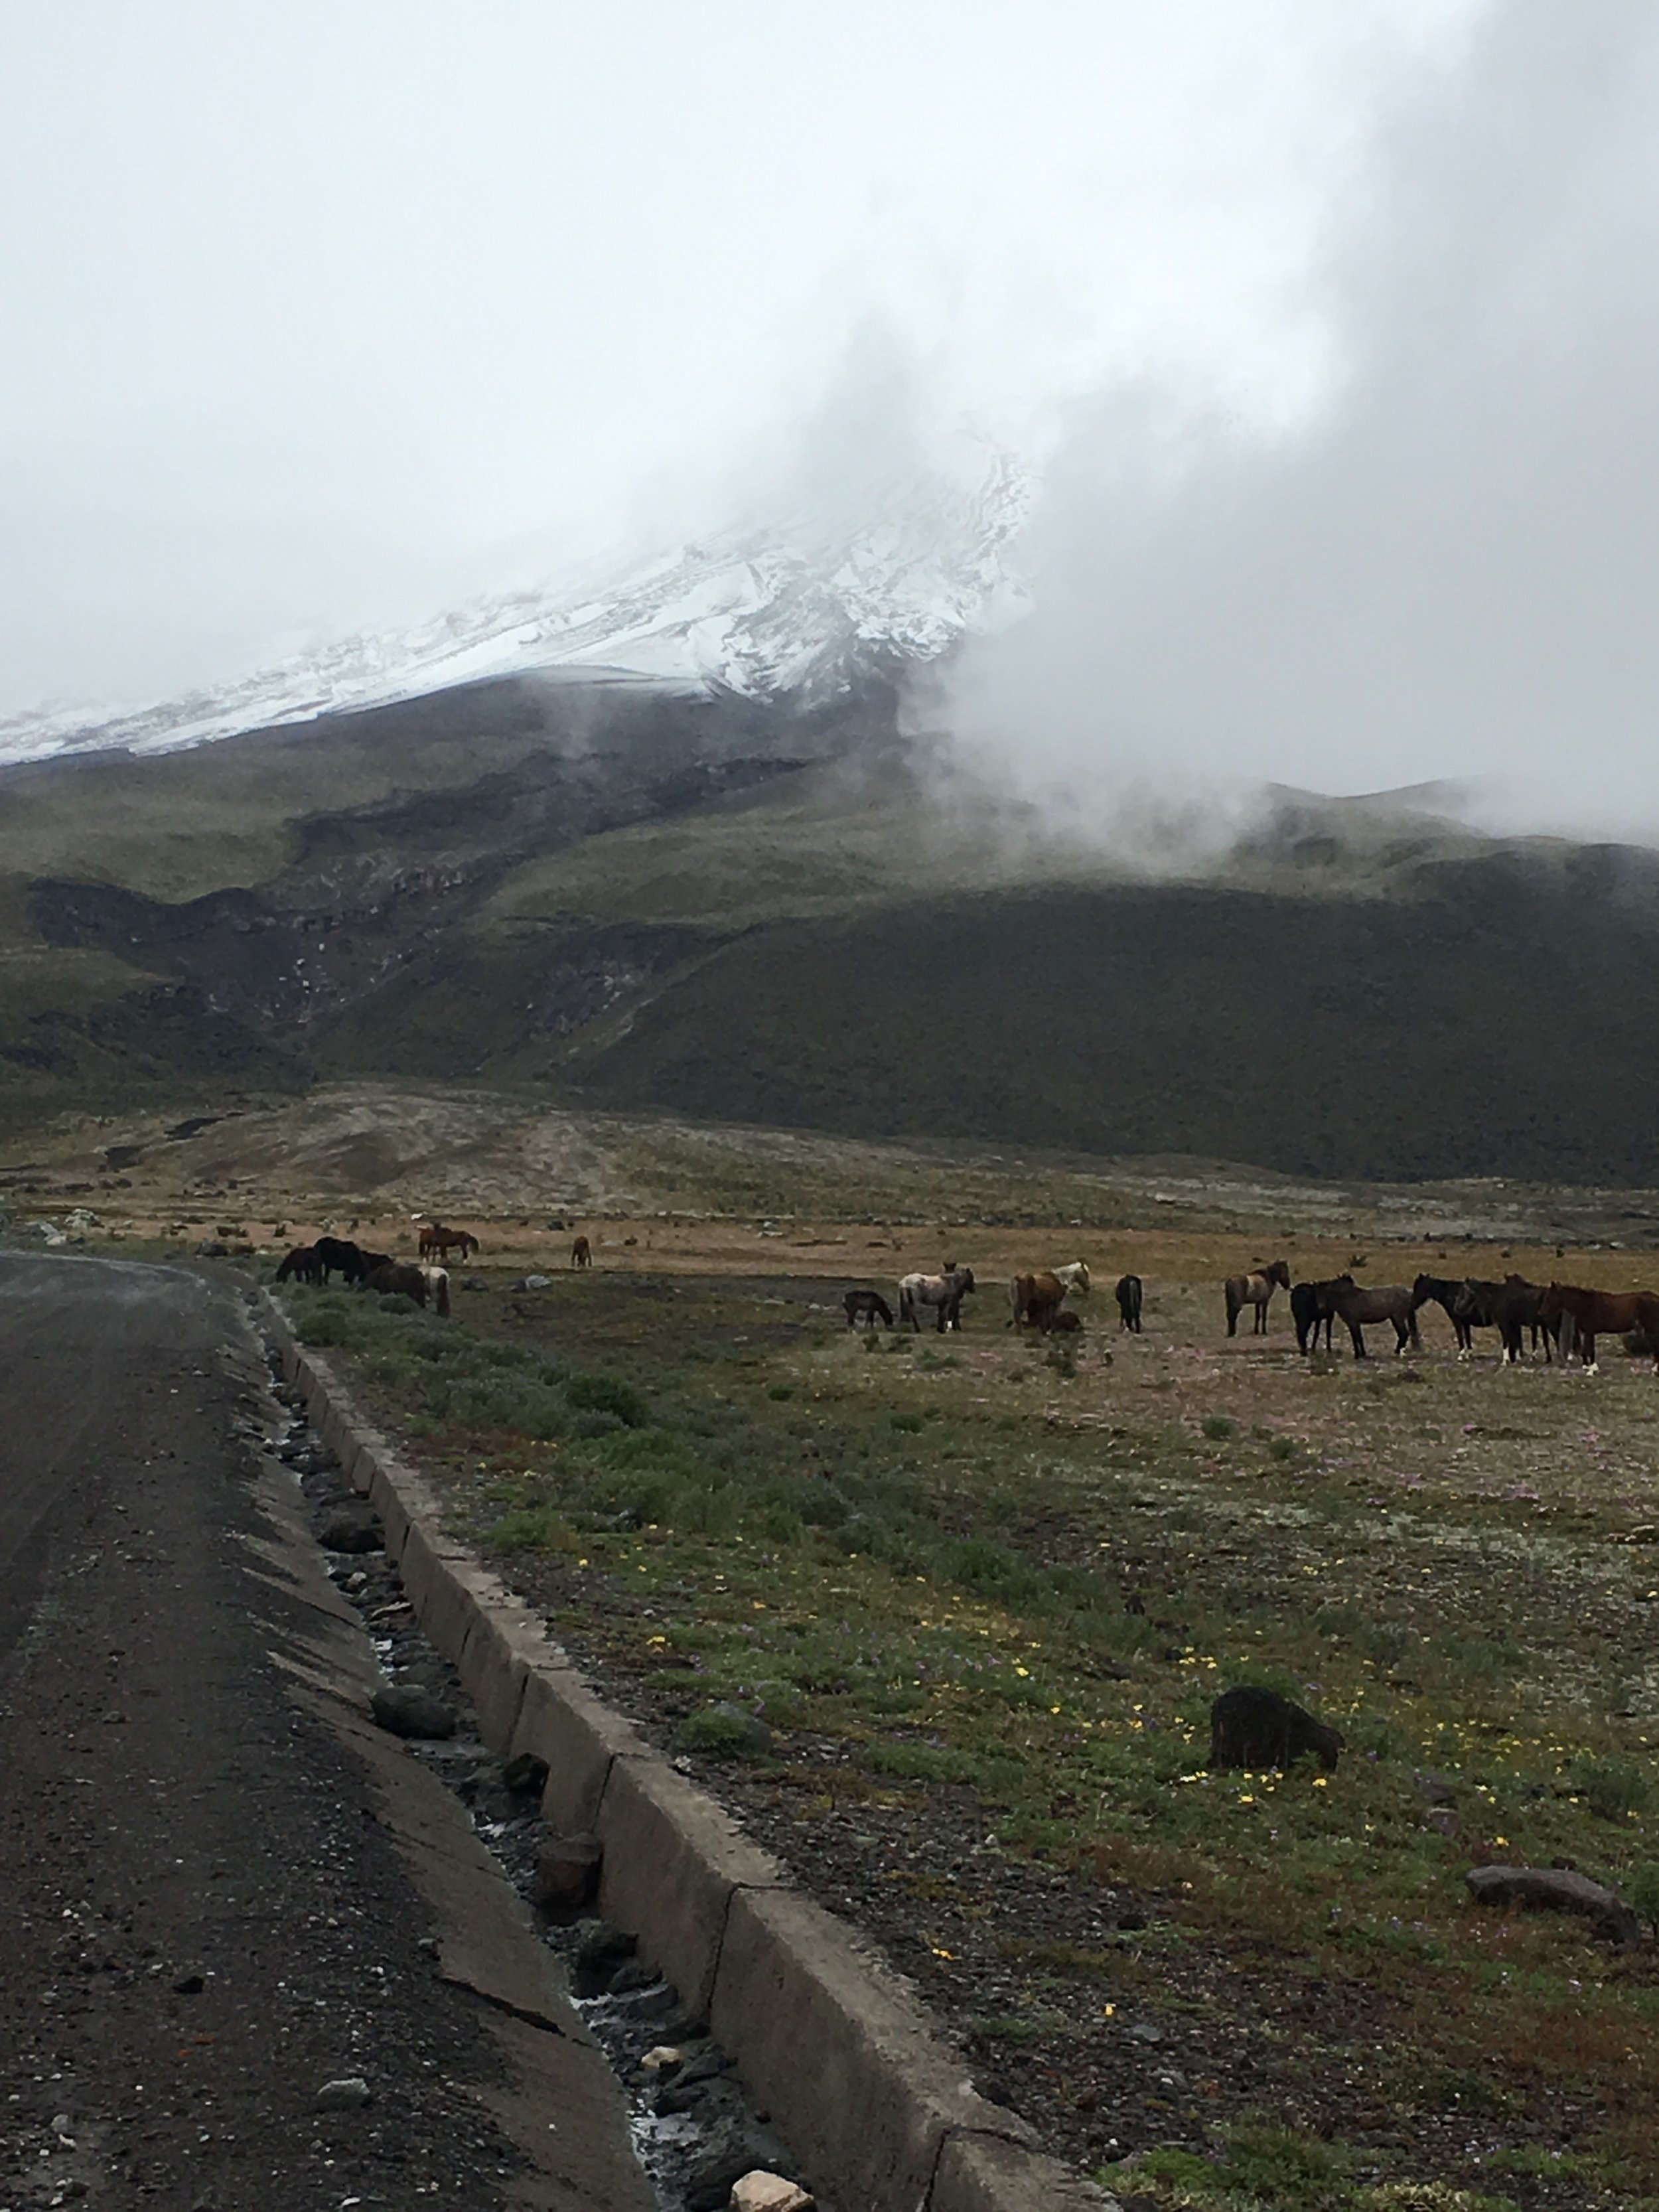 The view during our drive to the parking lot. We were hoping for a clear day but we were lucky to be able to at least see some of Cotopaxi. Those are also wild horses that live in the national park.